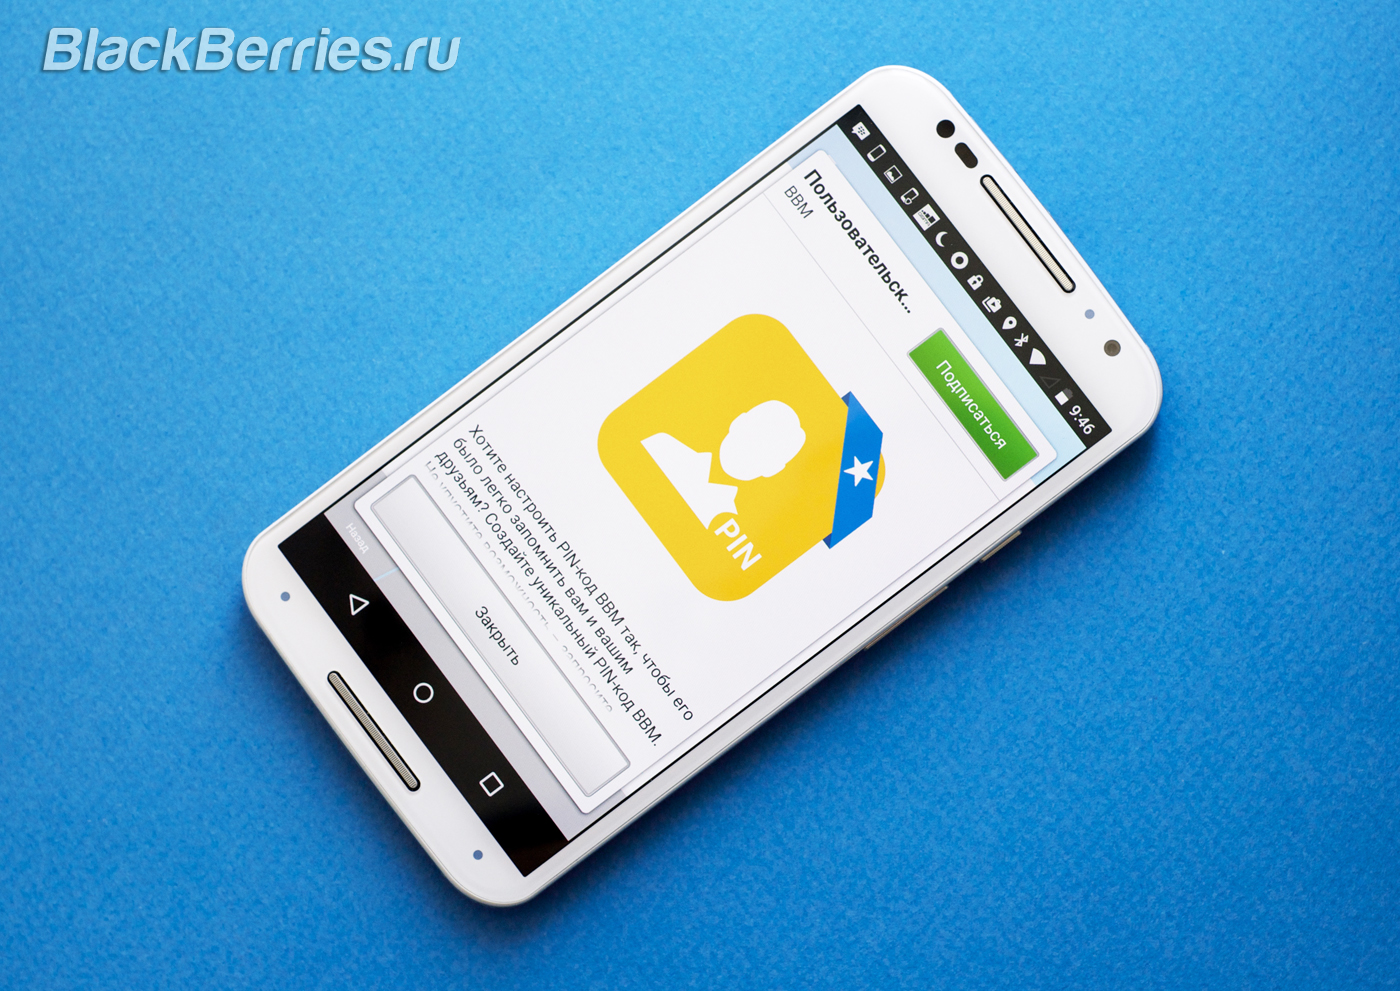 BBM-Android-Wear-BB-01